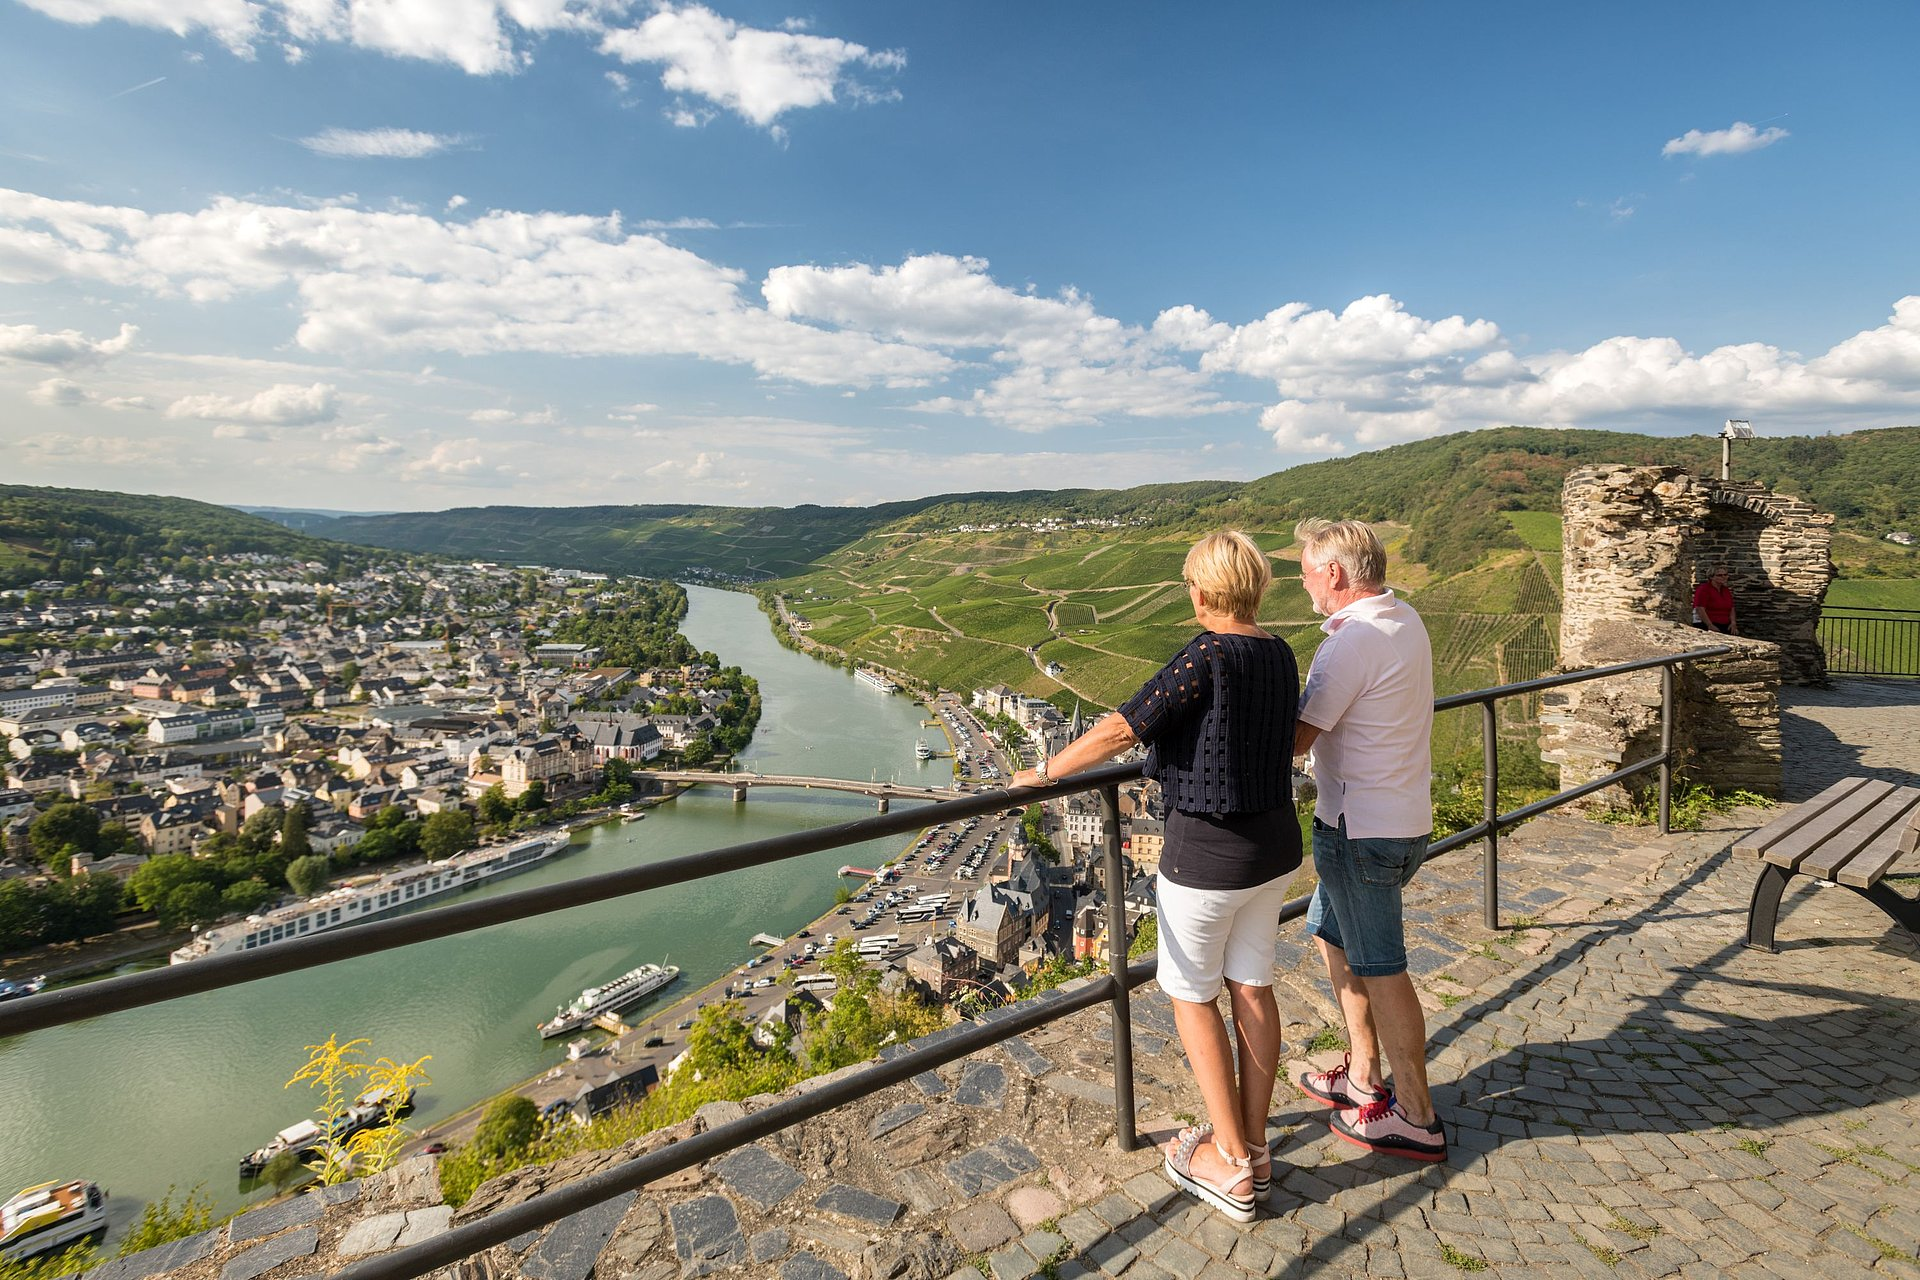 View from the castle Landshut of Bernkastel-Kues, Moselle